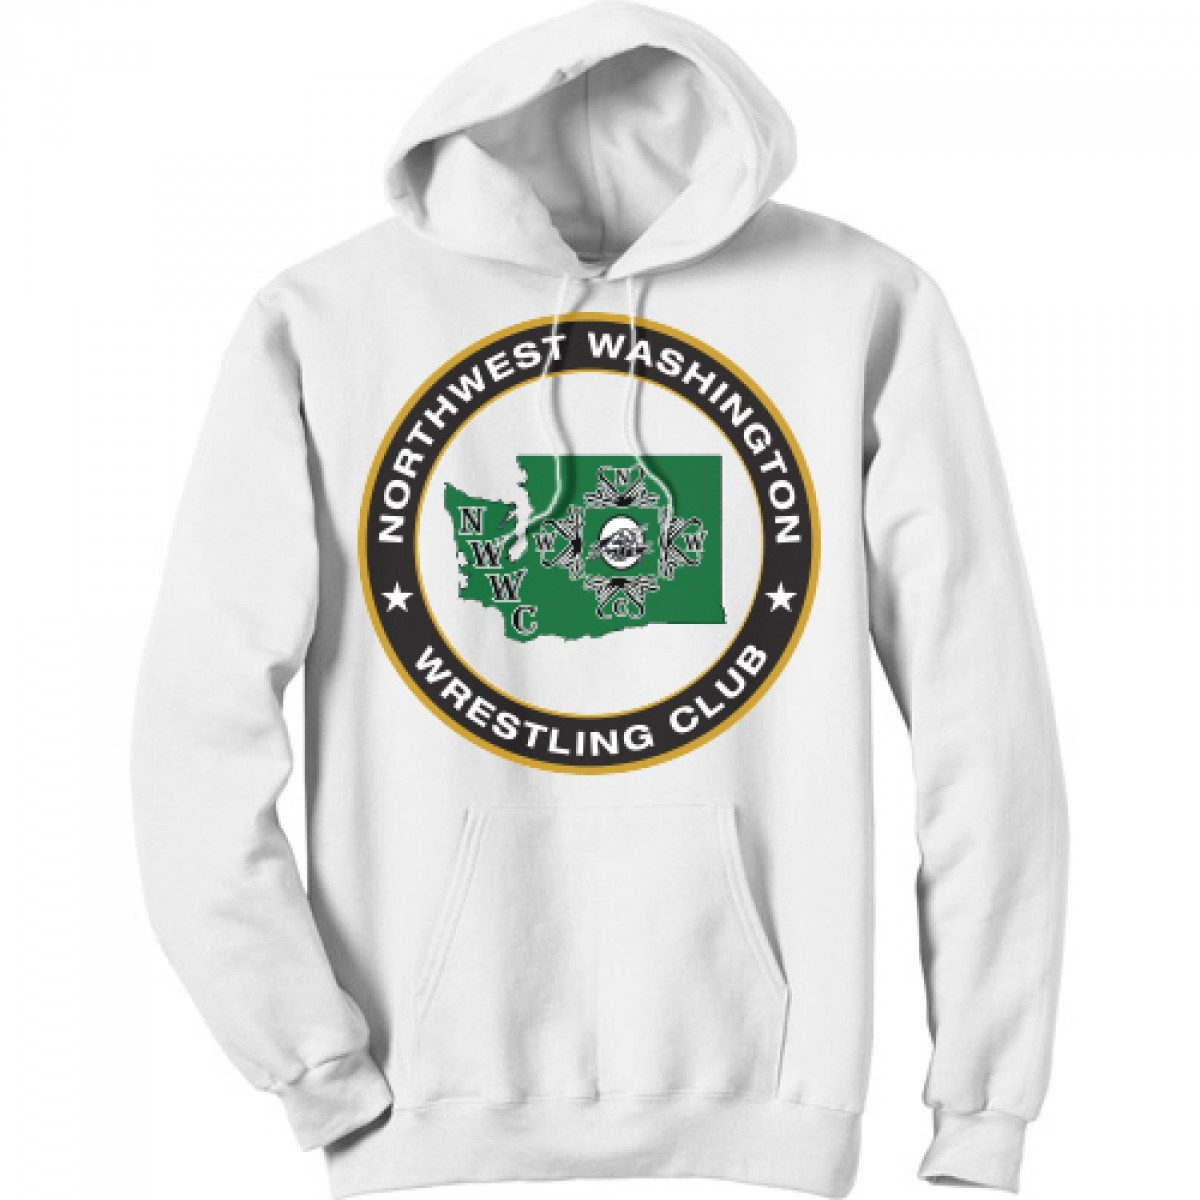 NWWC White Hoodie With Green Logo-White-3XL